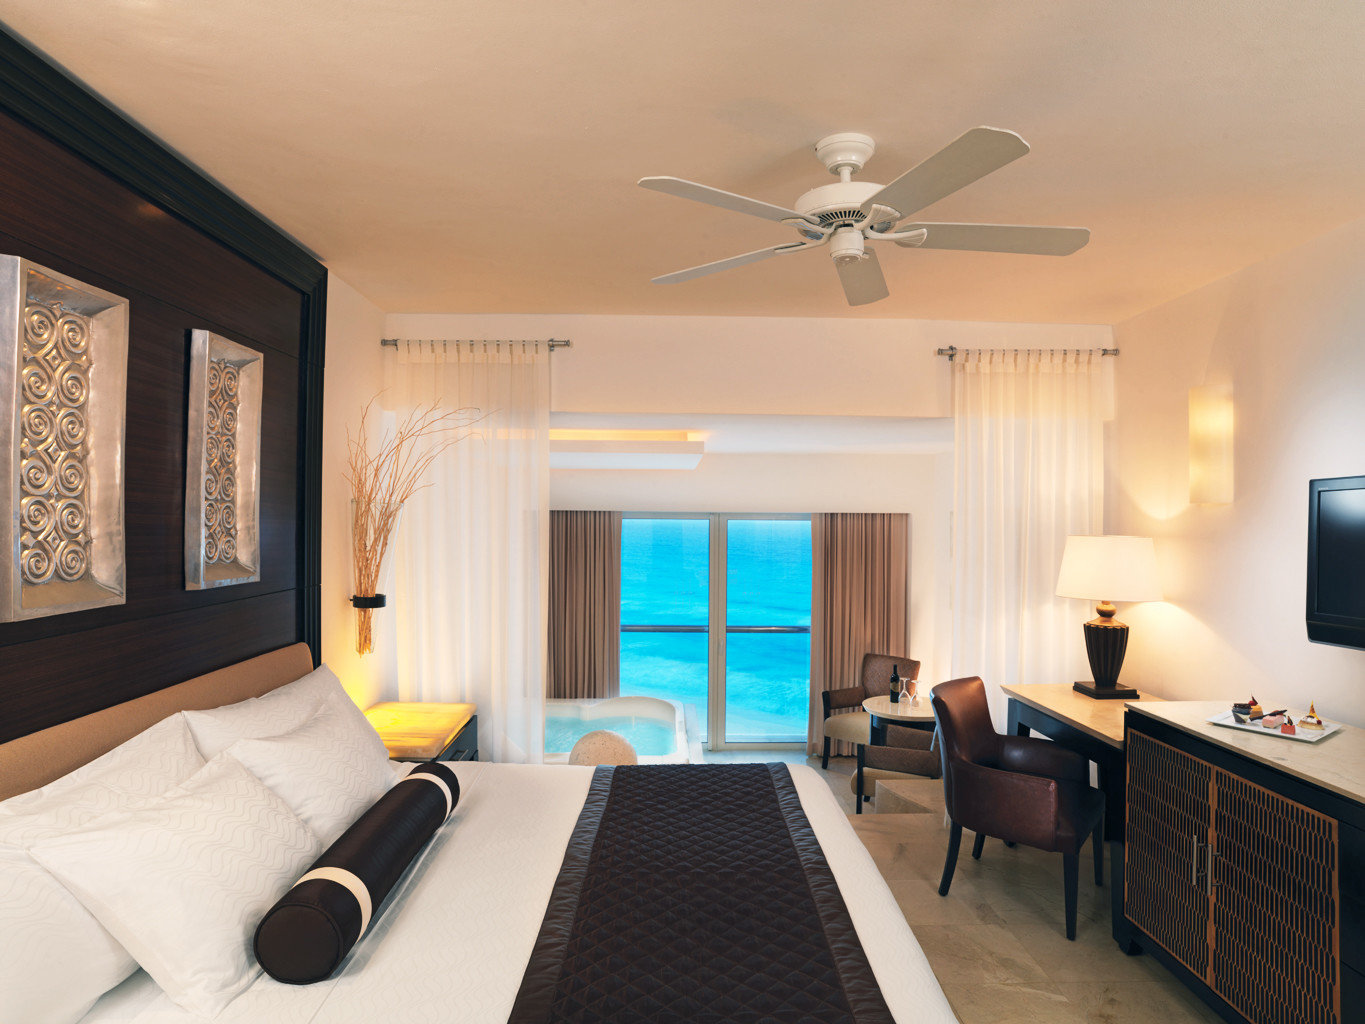 All-Inclusive Resorts Hotels Romance indoor wall room ceiling floor property bed Living window Suite Bedroom living room estate hotel interior design real estate furniture cottage Design Villa condominium apartment decorated area